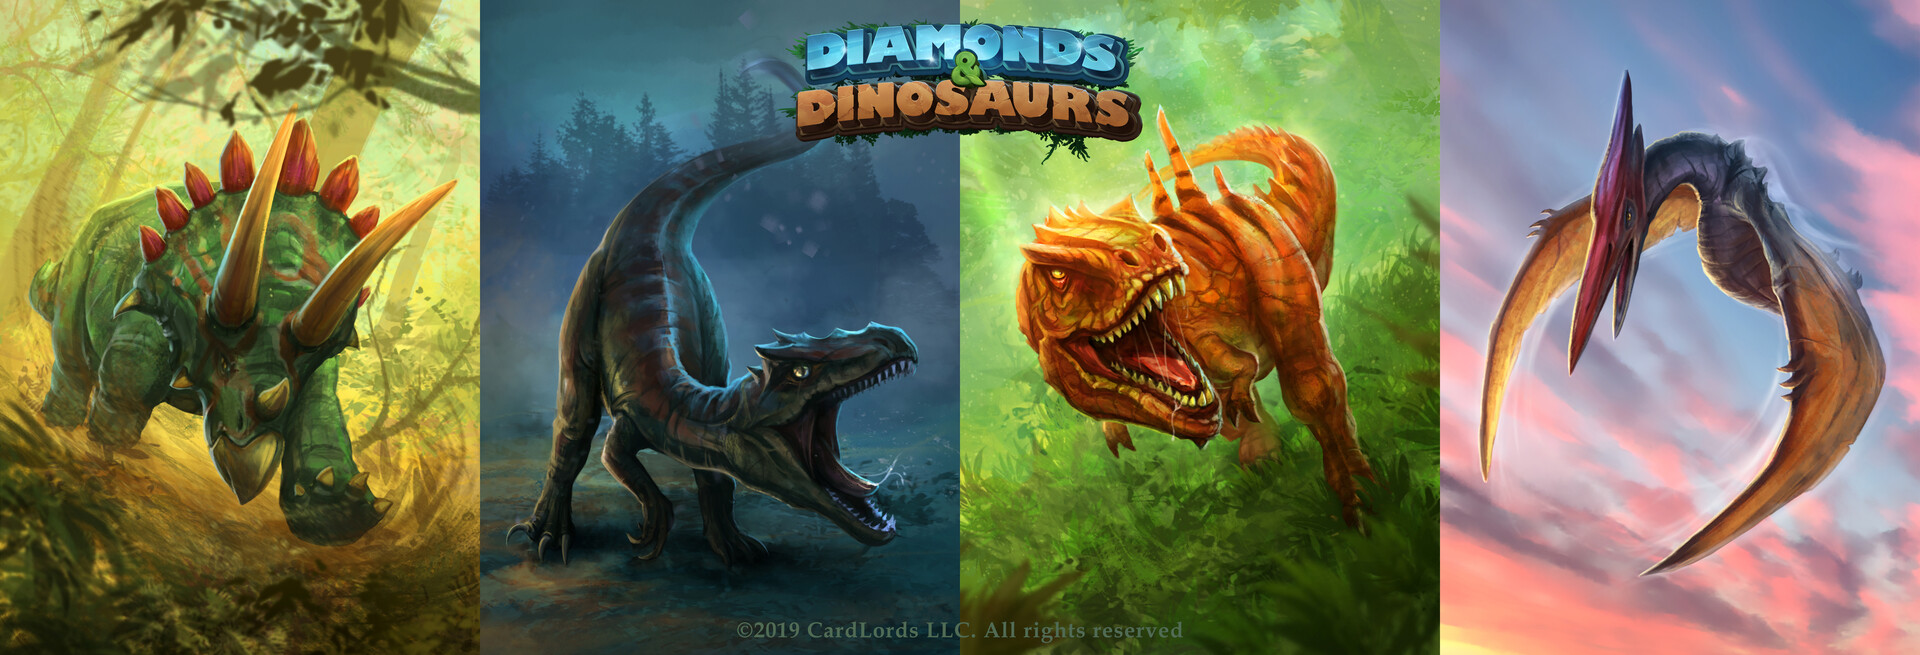 Artworks for Diamonds & Dinosaurs.